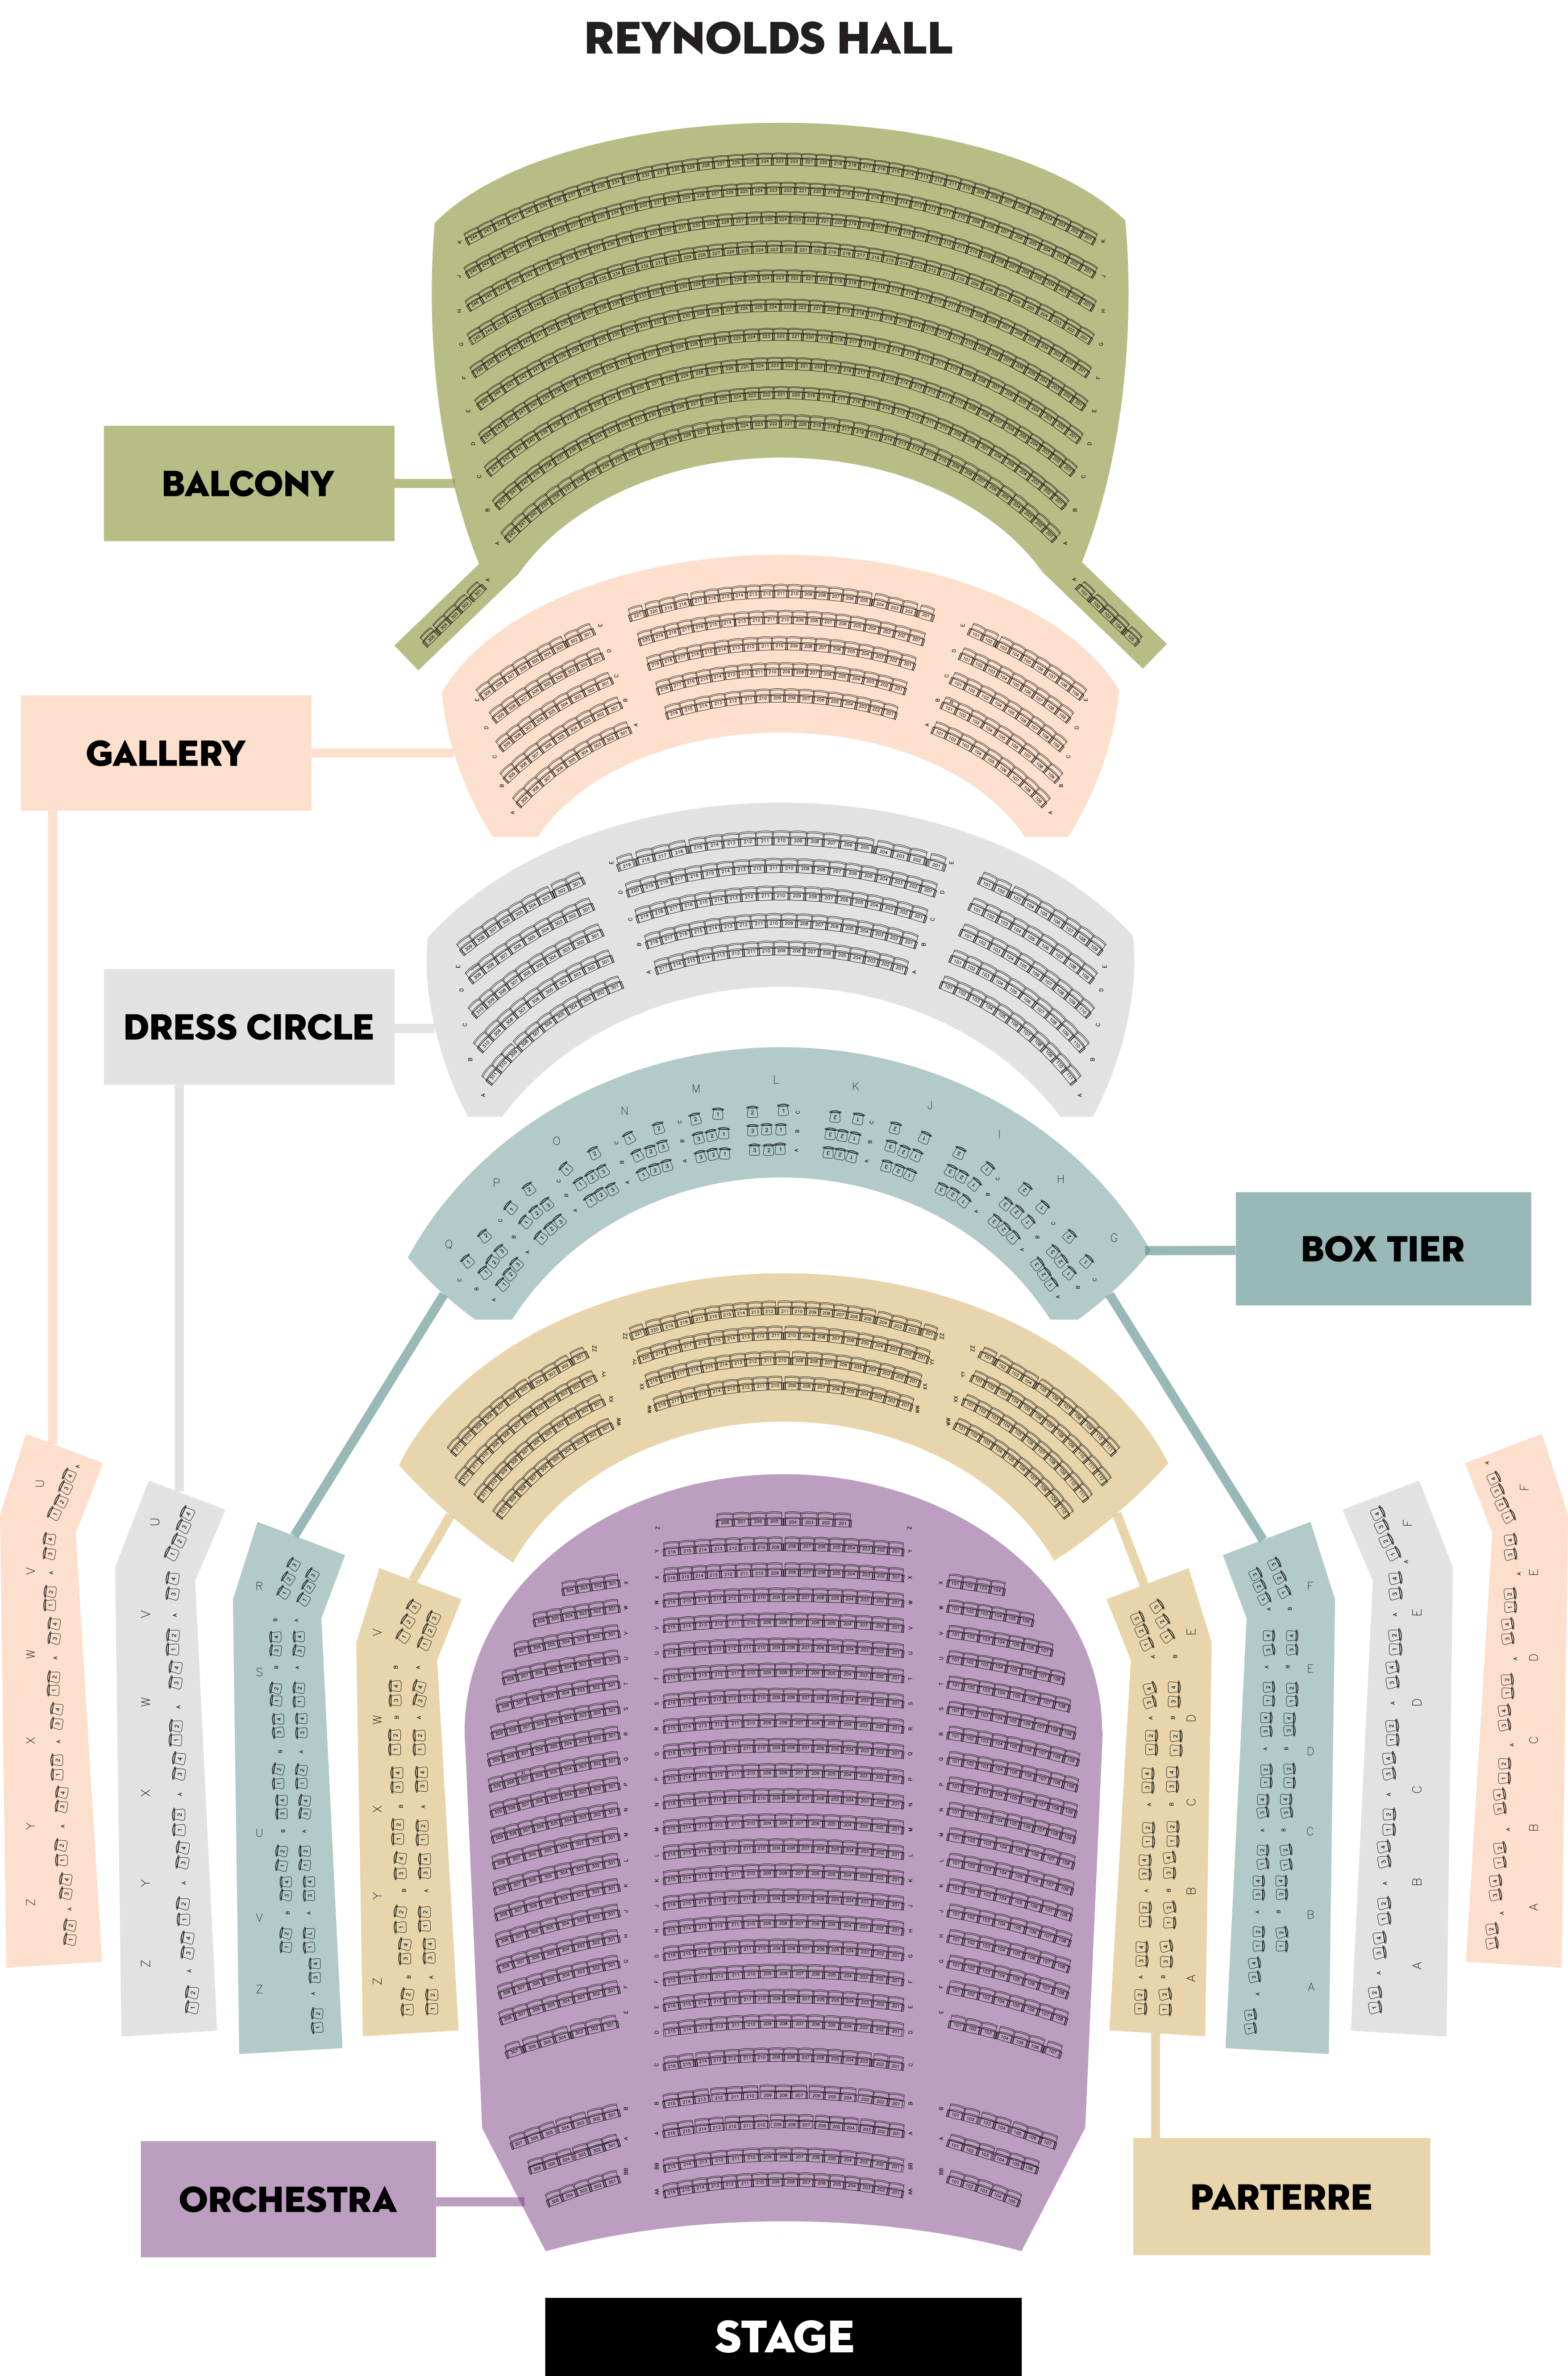 Seating Charts The Smith Center Las Vegas Smith Center Seating Charts Will Smith